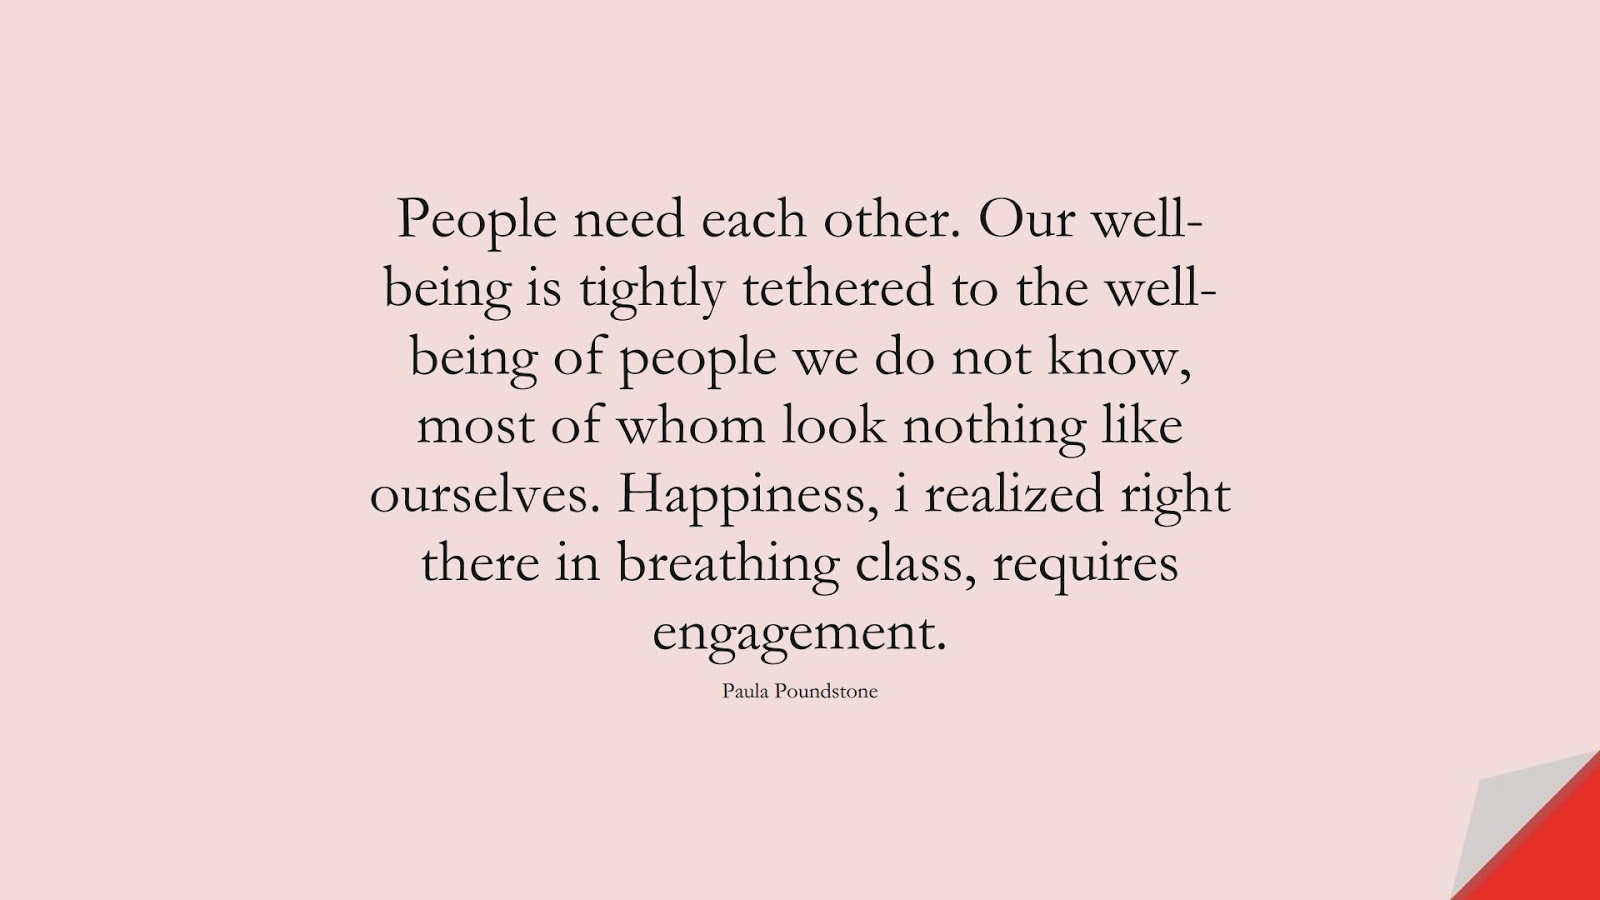 People need each other. Our well-being is tightly tethered to the well-being of people we do not know, most of whom look nothing like ourselves. Happiness, i realized right there in breathing class, requires engagement. (Paula Poundstone);  #HappinessQuotes